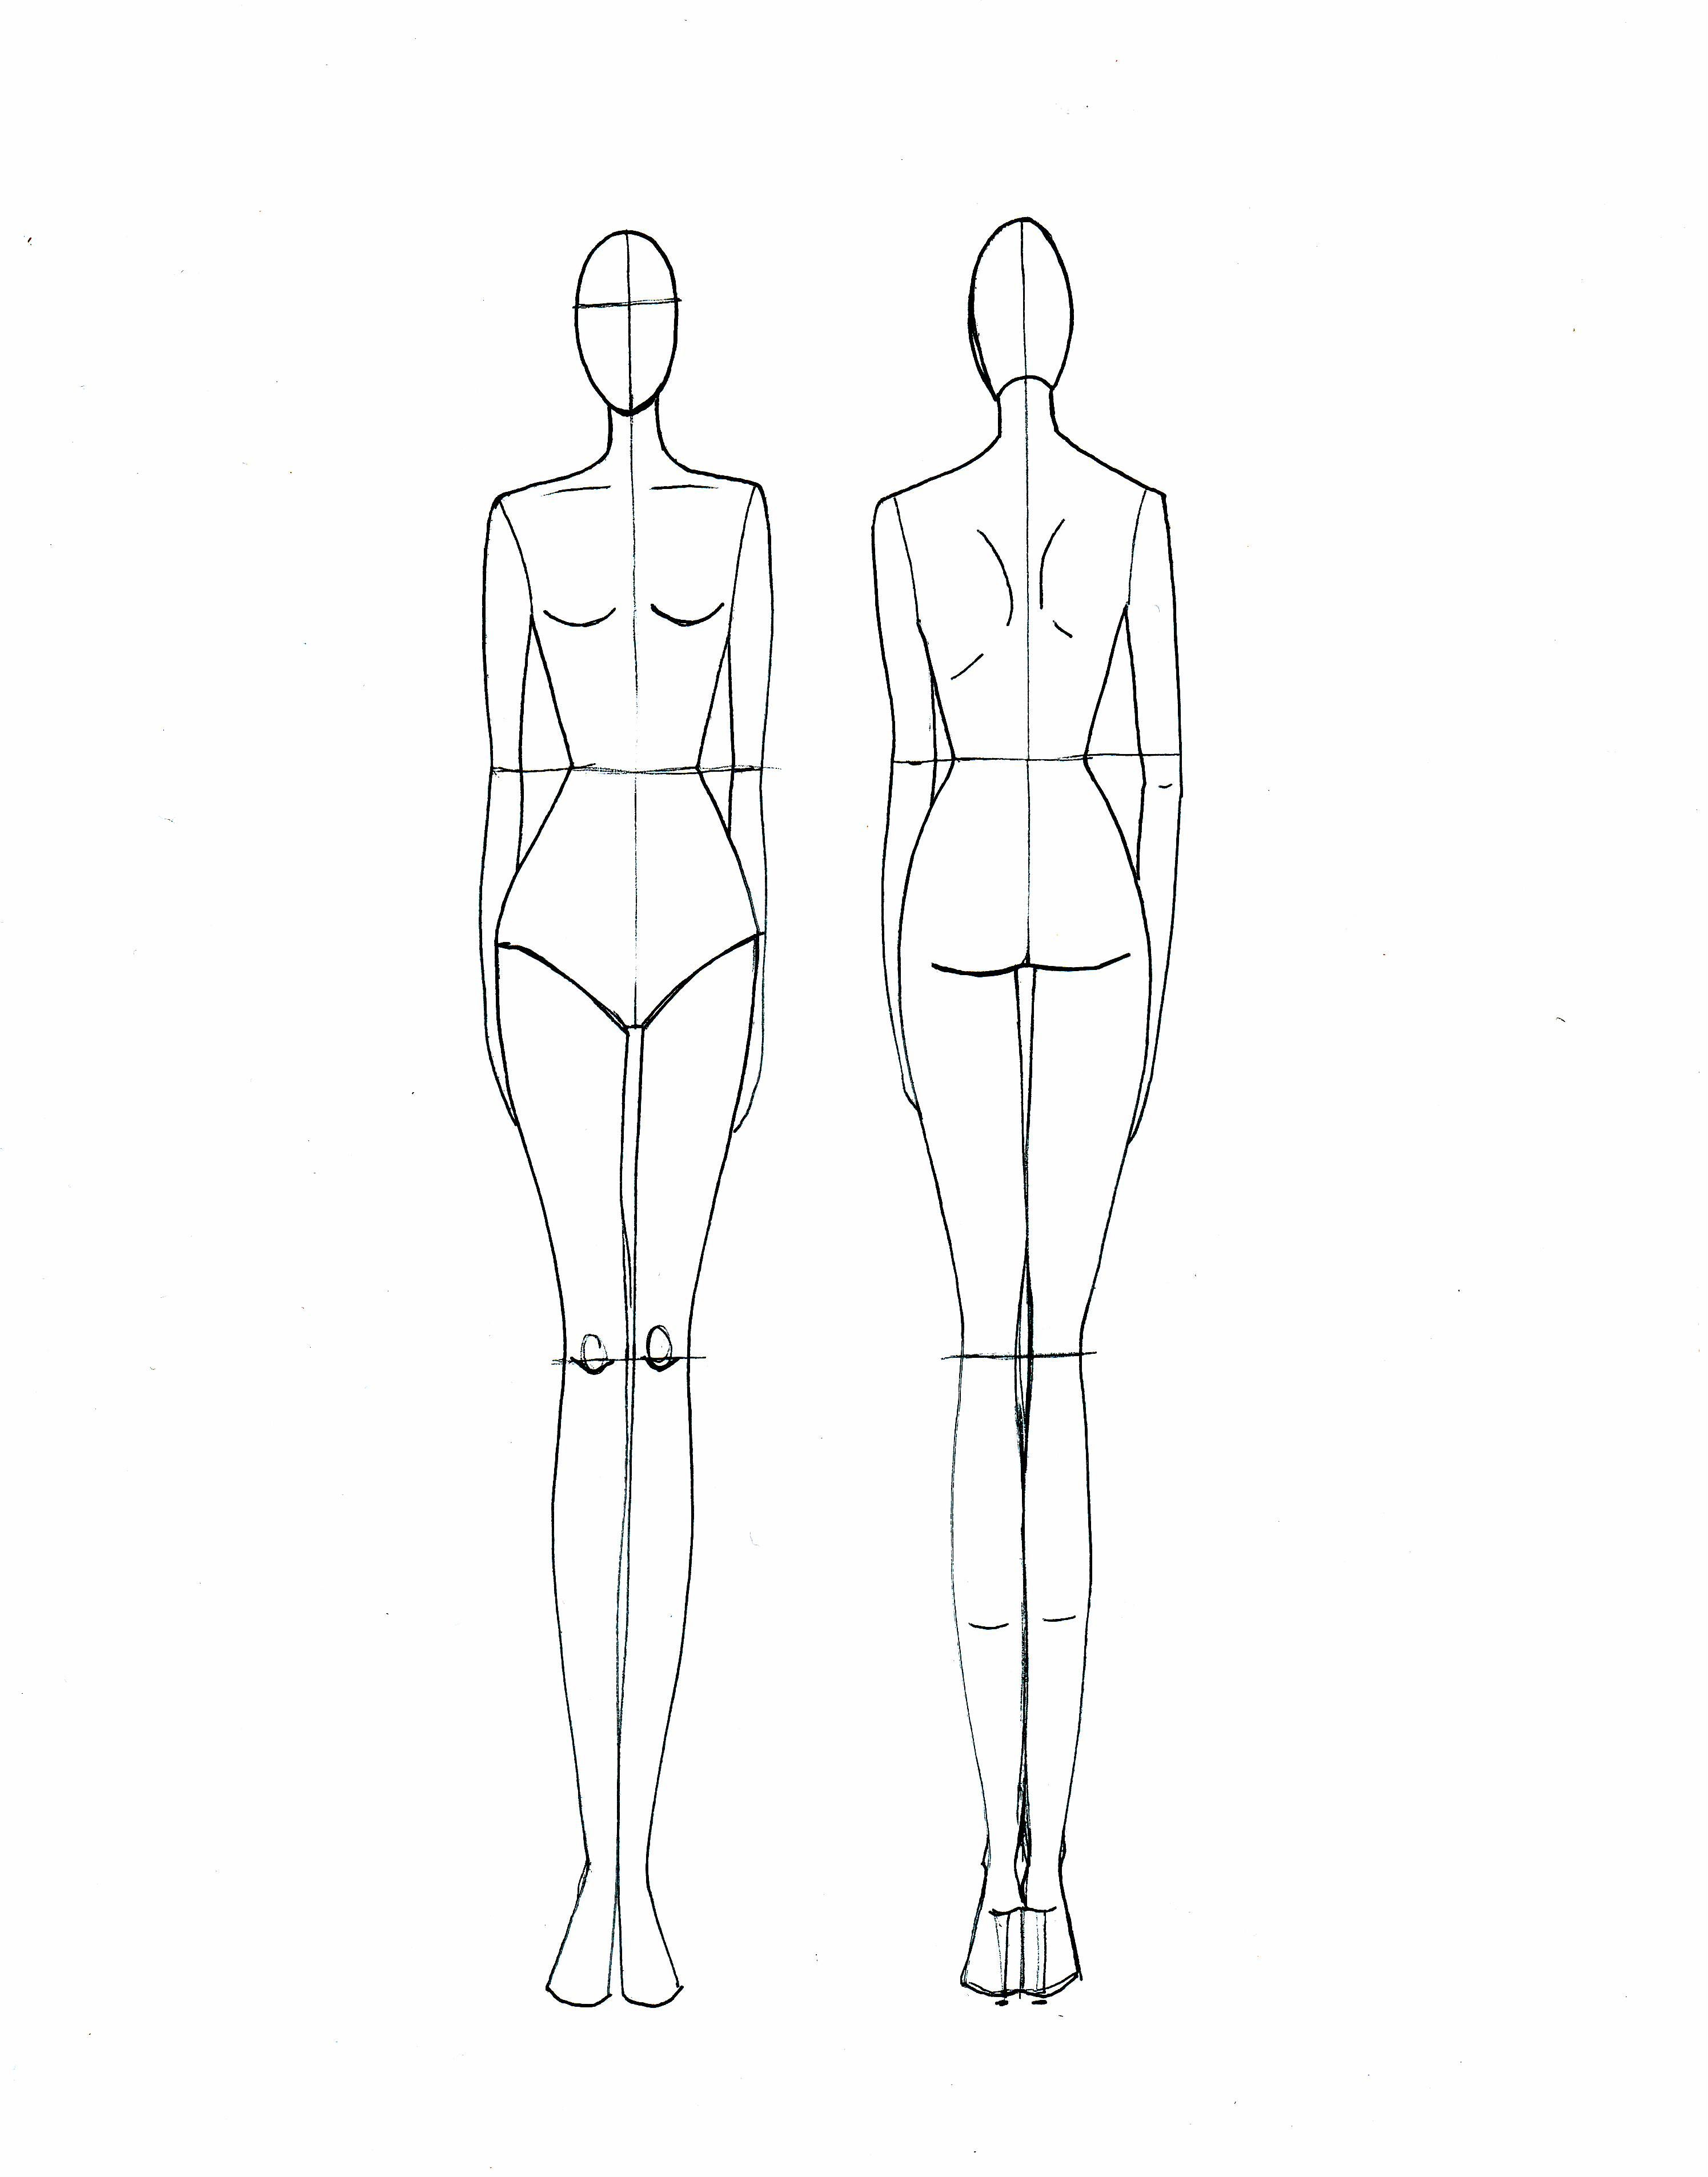 Blank Fashion Design Models   Projects To Try   Fashion Illustration - Free Printable Fashion Model Templates